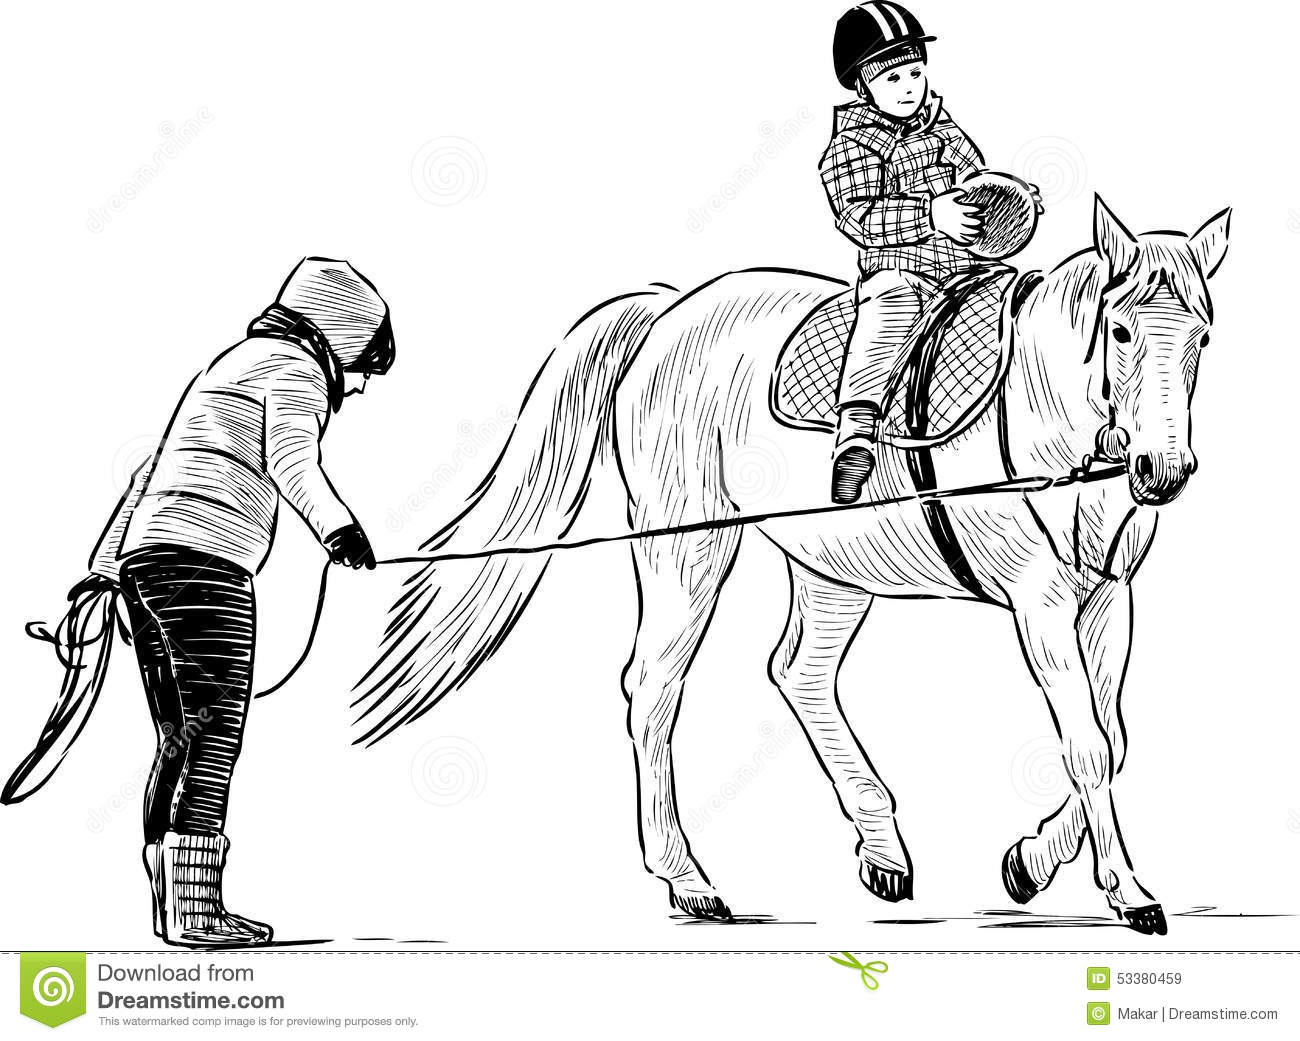 Horse riding lessons stock vector. Illustration of woman